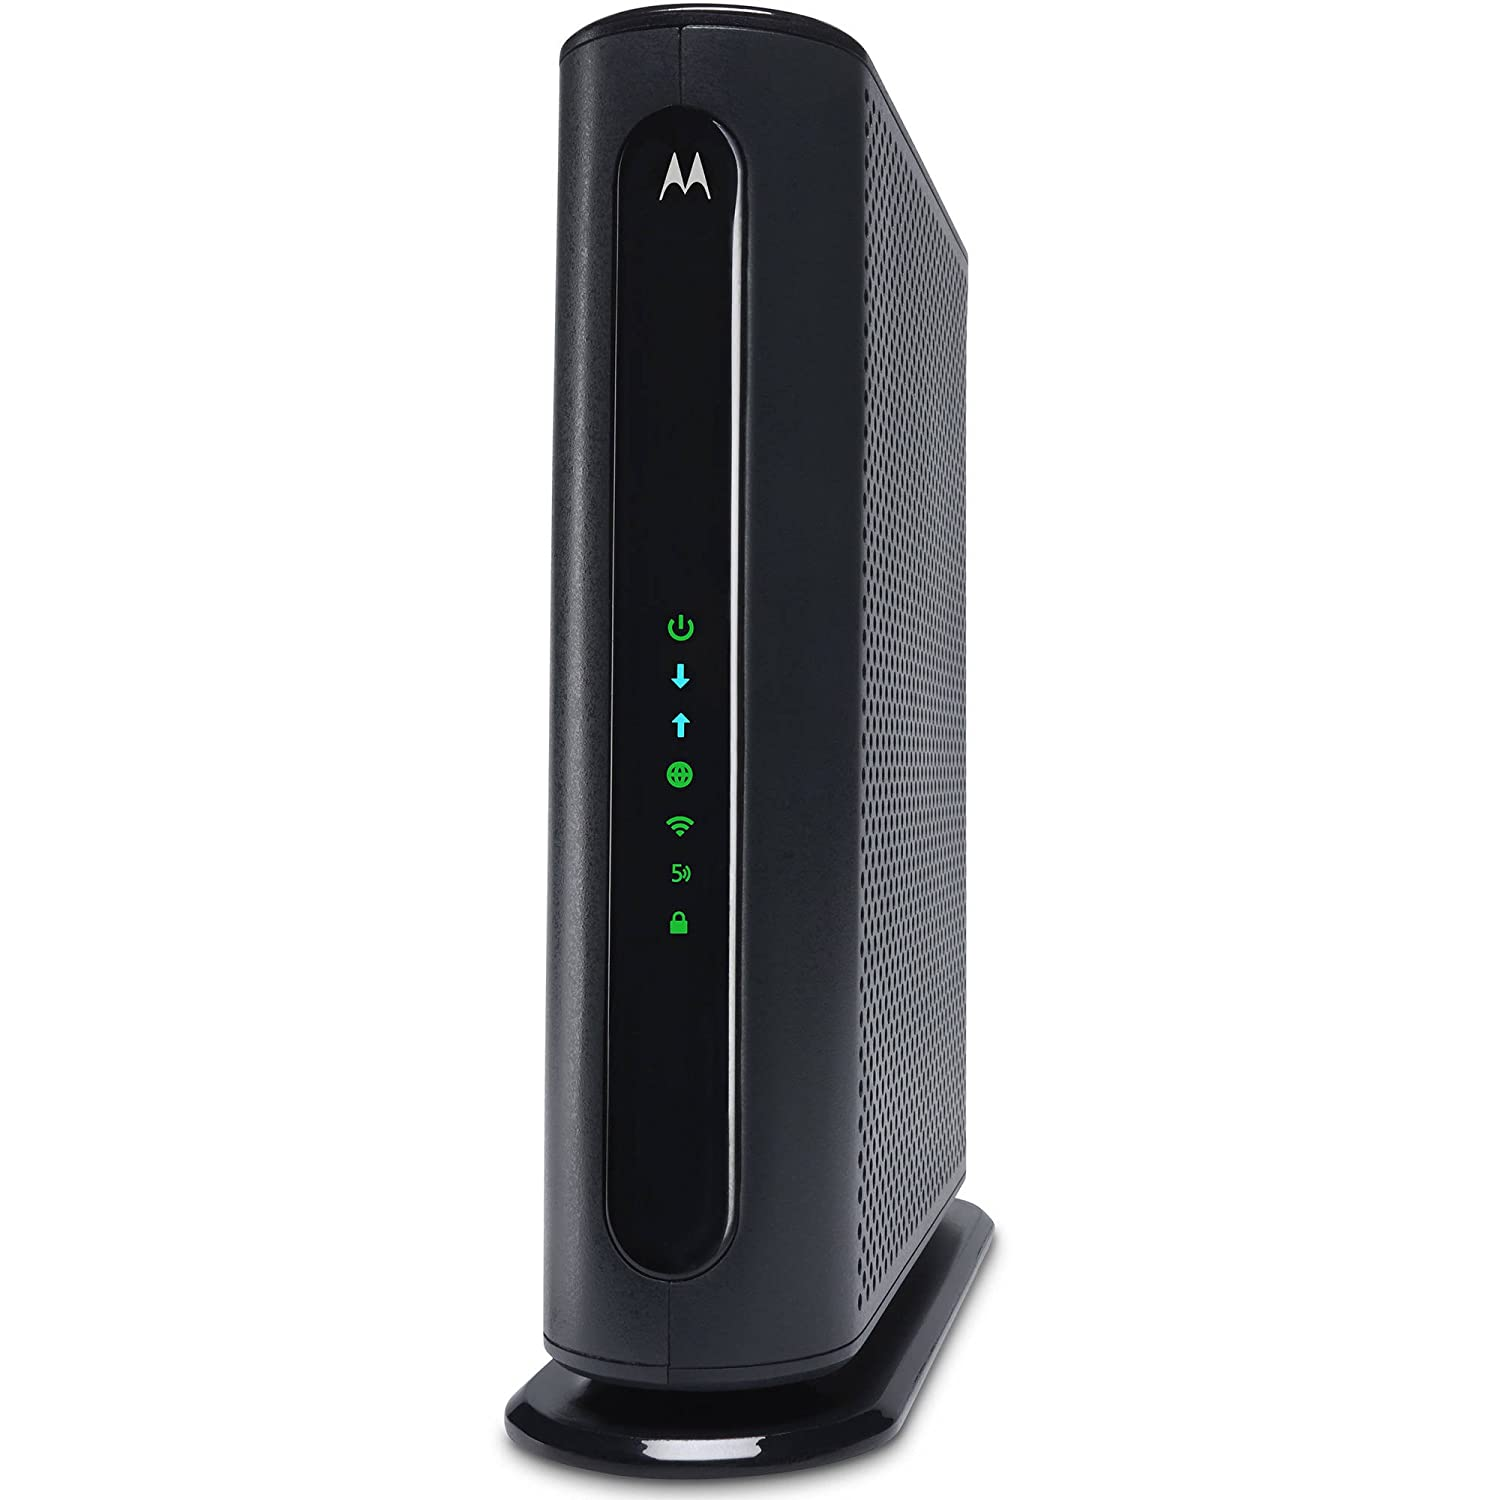 Motorola 16x4 High-Speed Cable Gateway with Wi-Fi, 686 Mbps DOCSIS 3.0 Modem, AC1900 Wi-Fi Gigabit Router and Power Boost MG7550